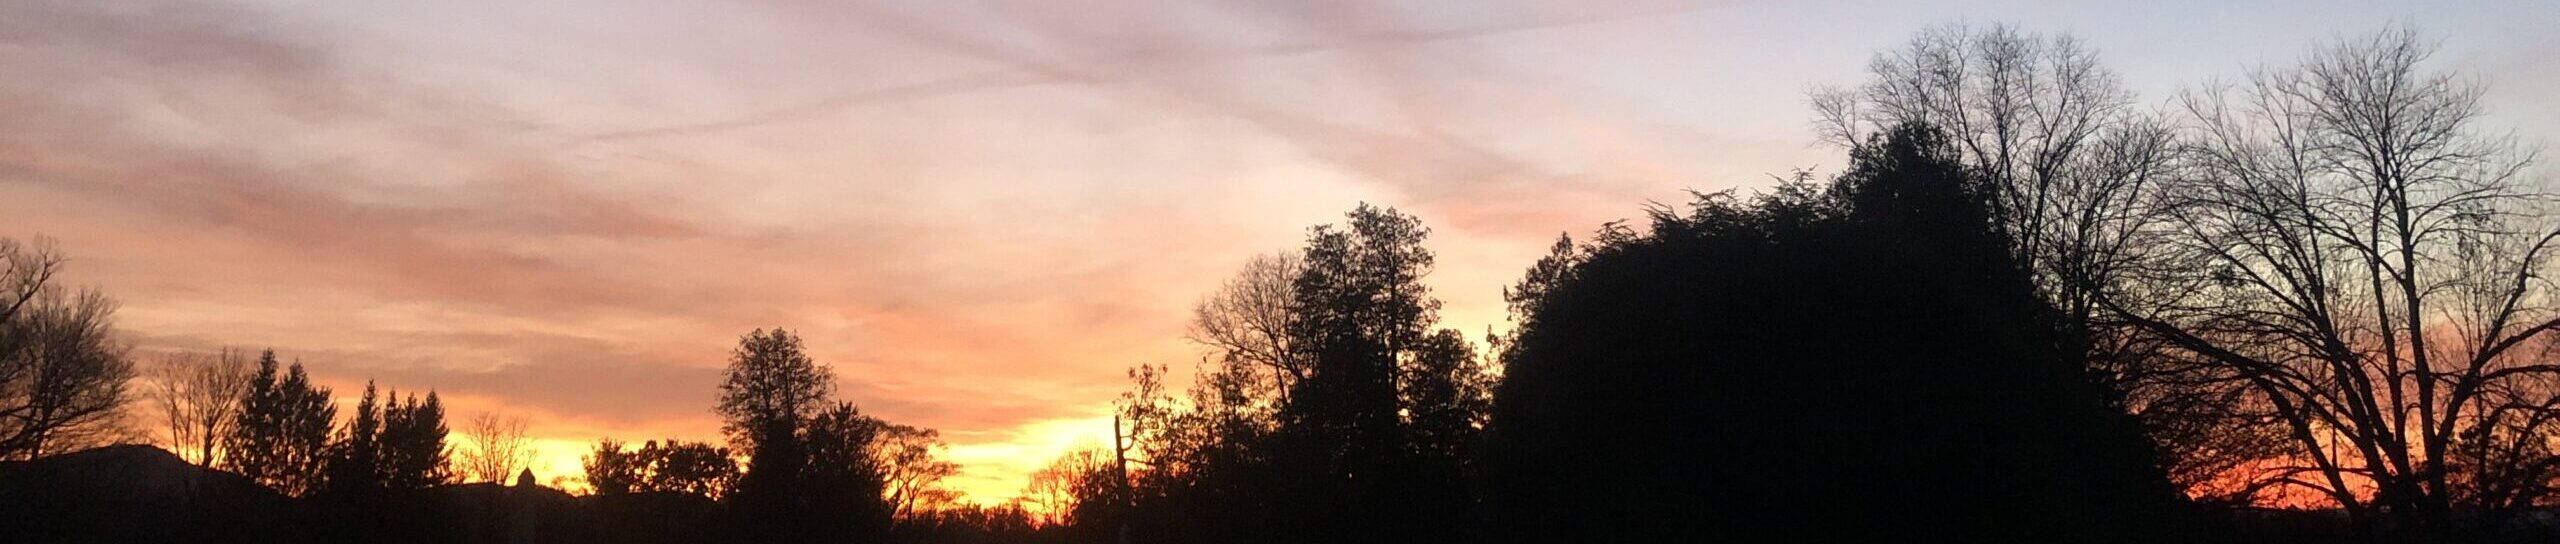 Sunset showing orange-yellow above black silhouettes of trees, shading up to purply-pink wispy clouds over darkening blue sky background